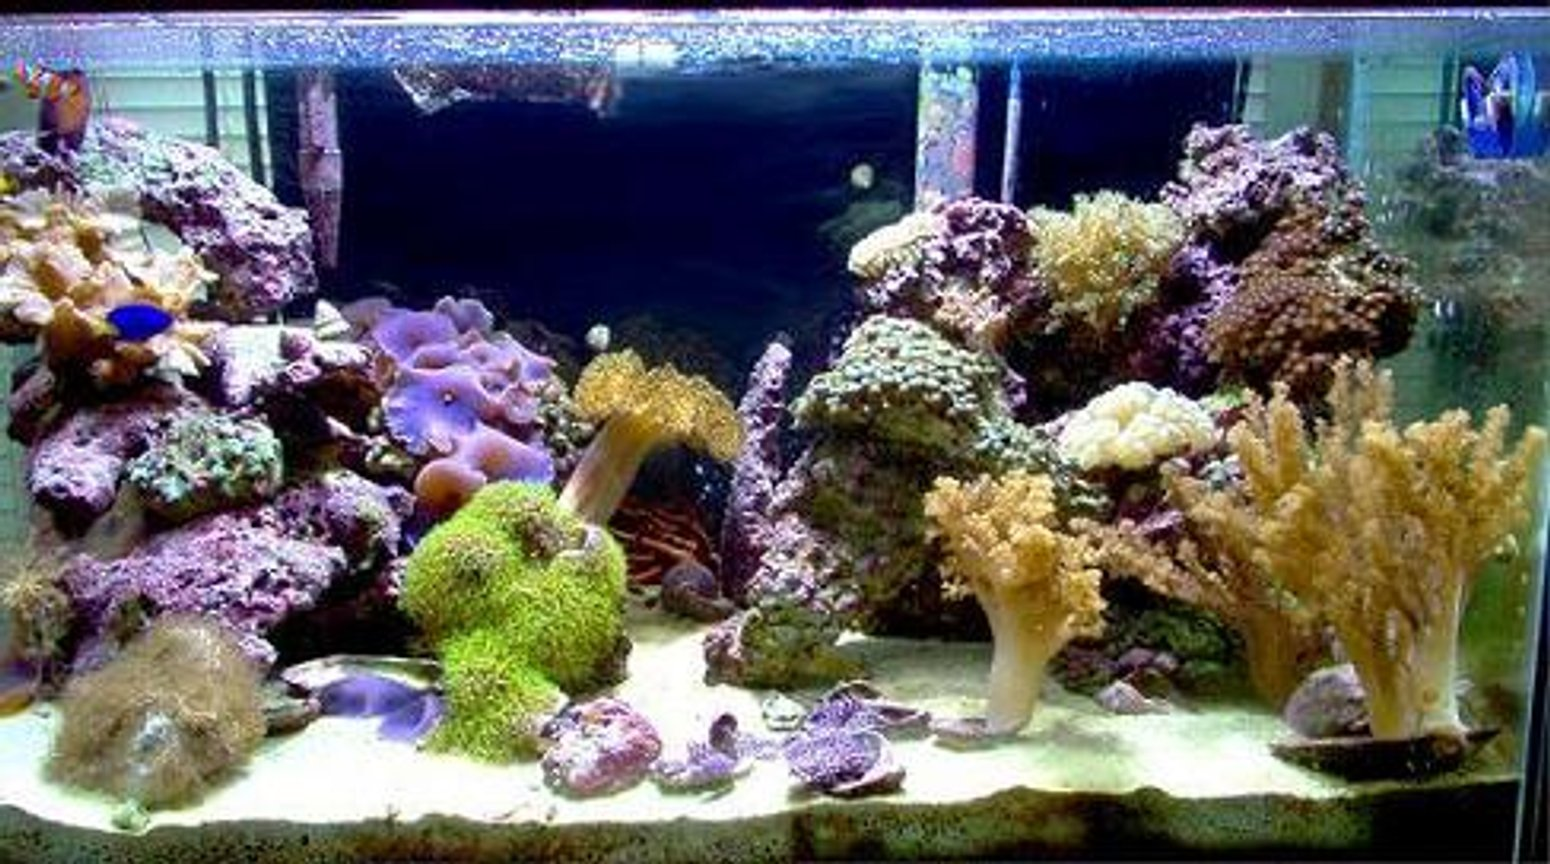 reef tank (mostly live coral and fish) - 40 gal salt (soon to be reef), 45 gal fresh, 29 gal salt fish only